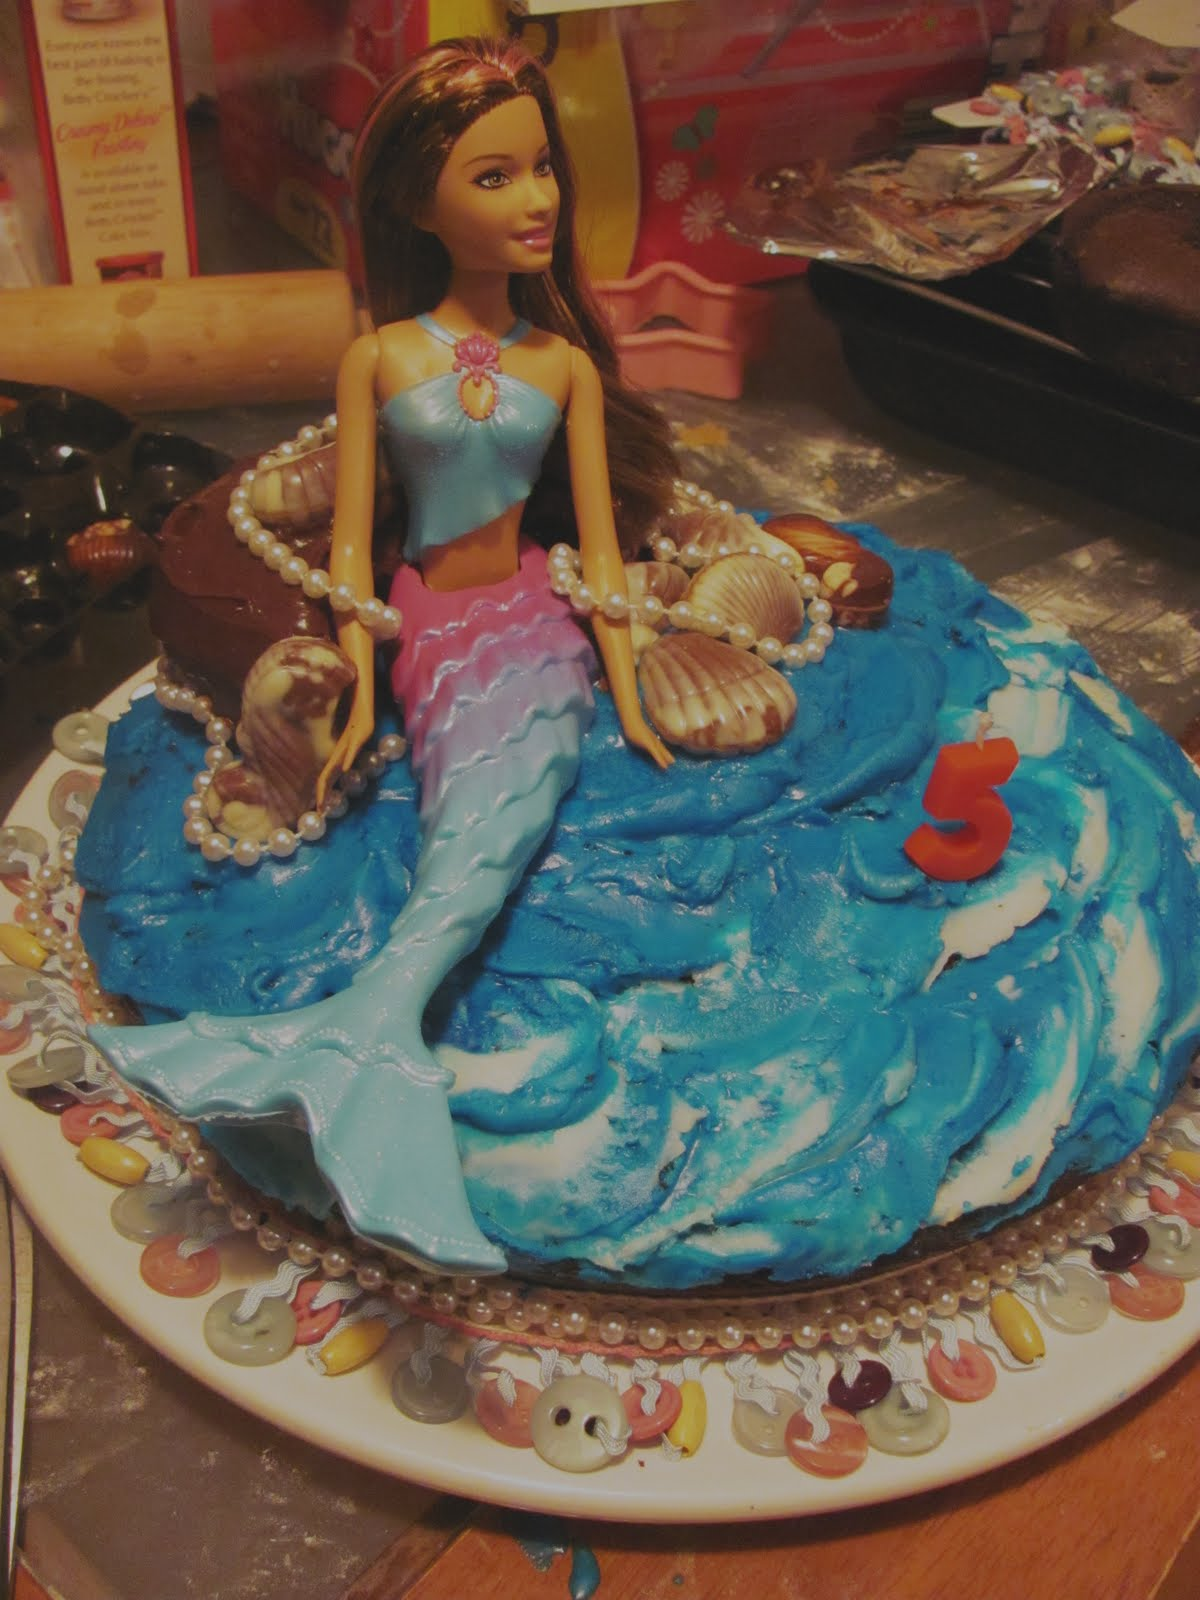 Barbie Mermaid Cake Images : Barbie Mermaid Cake Ideas and Designs